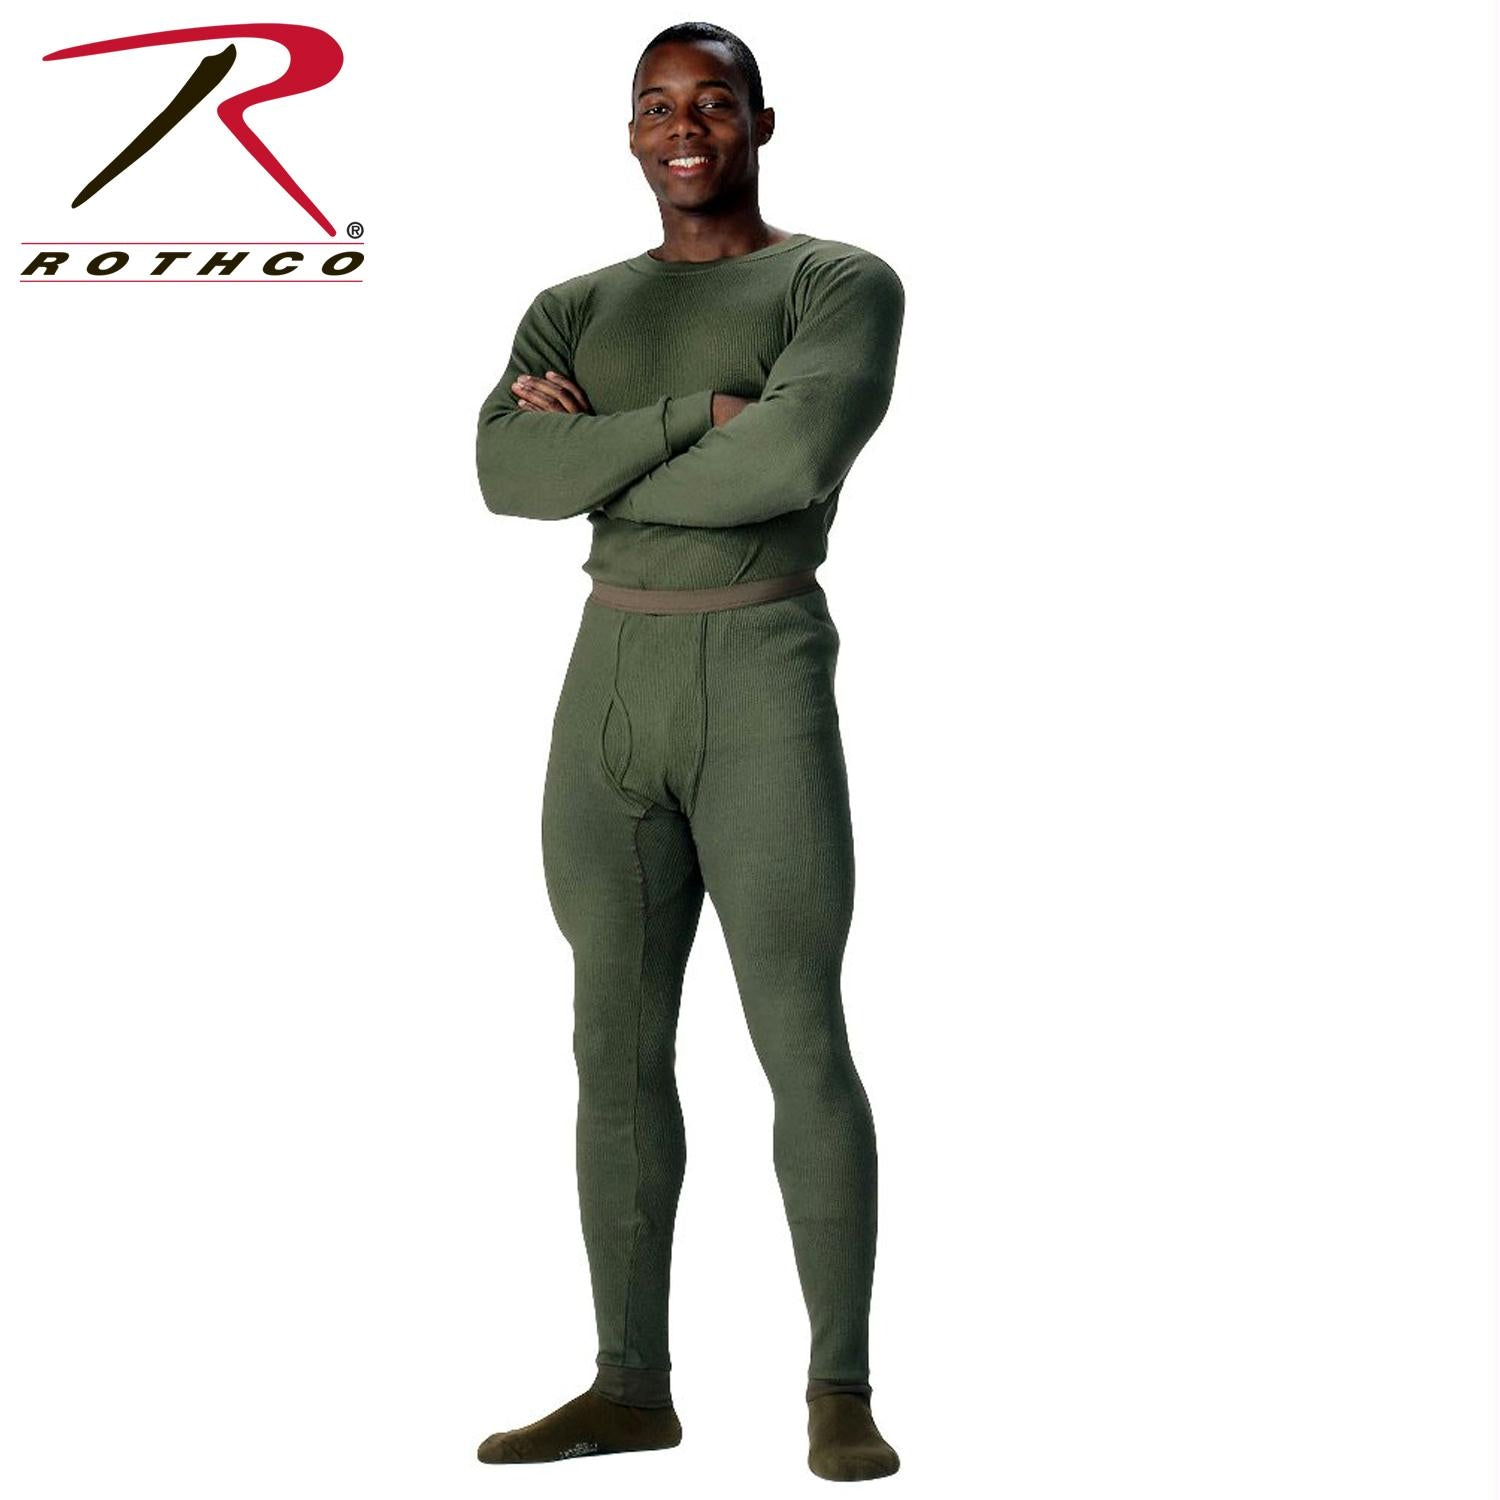 Rothco Thermal Knit Underwear Bottoms - Olive Drab / L